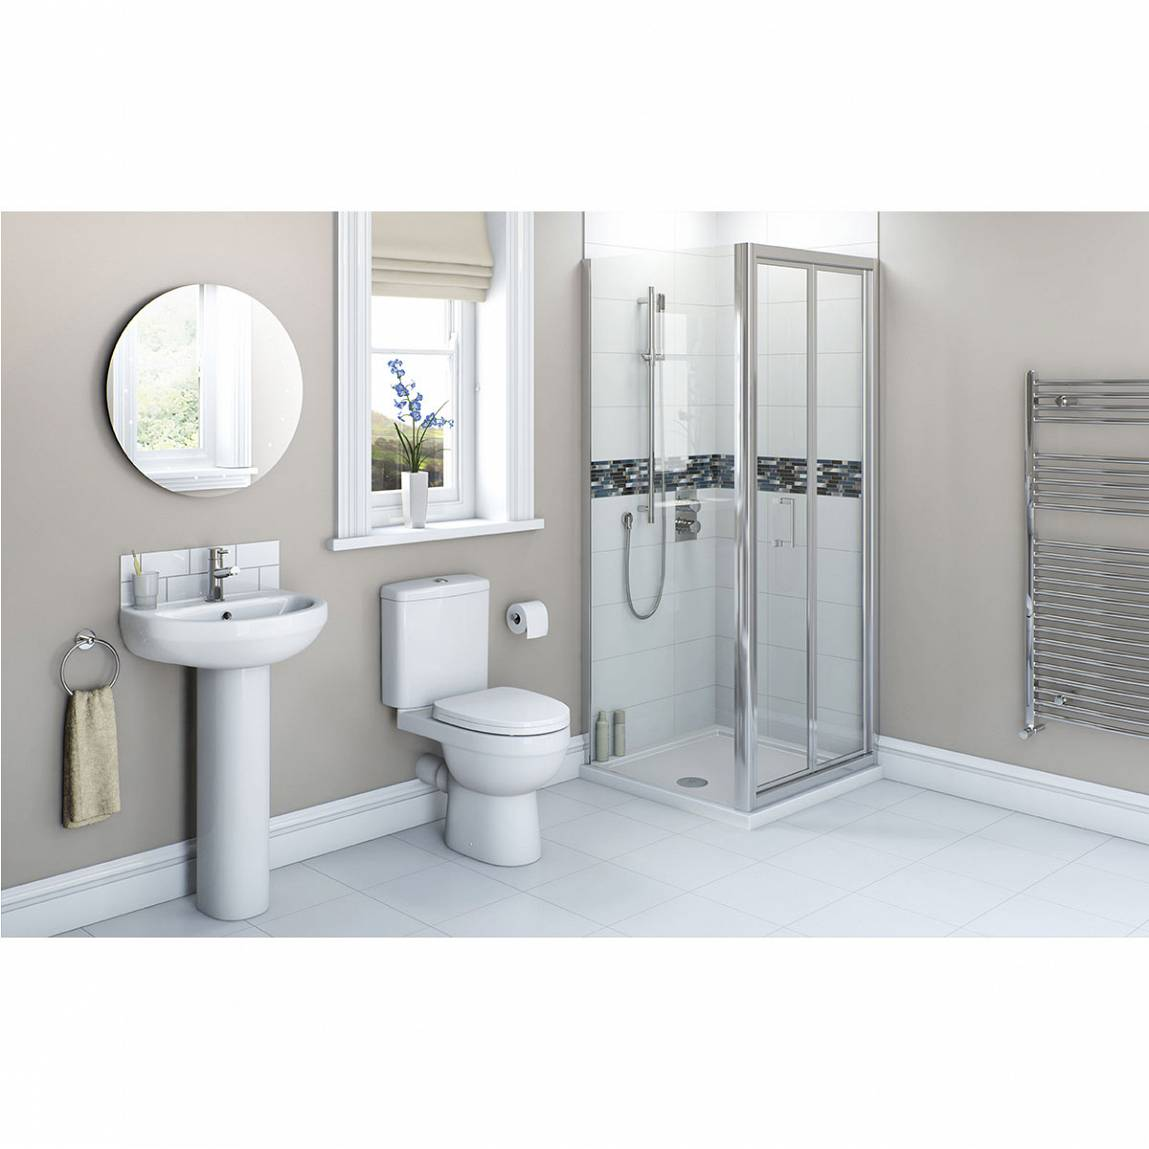 Image of Energy Bathroom Set with Bifold Enclosure Suite